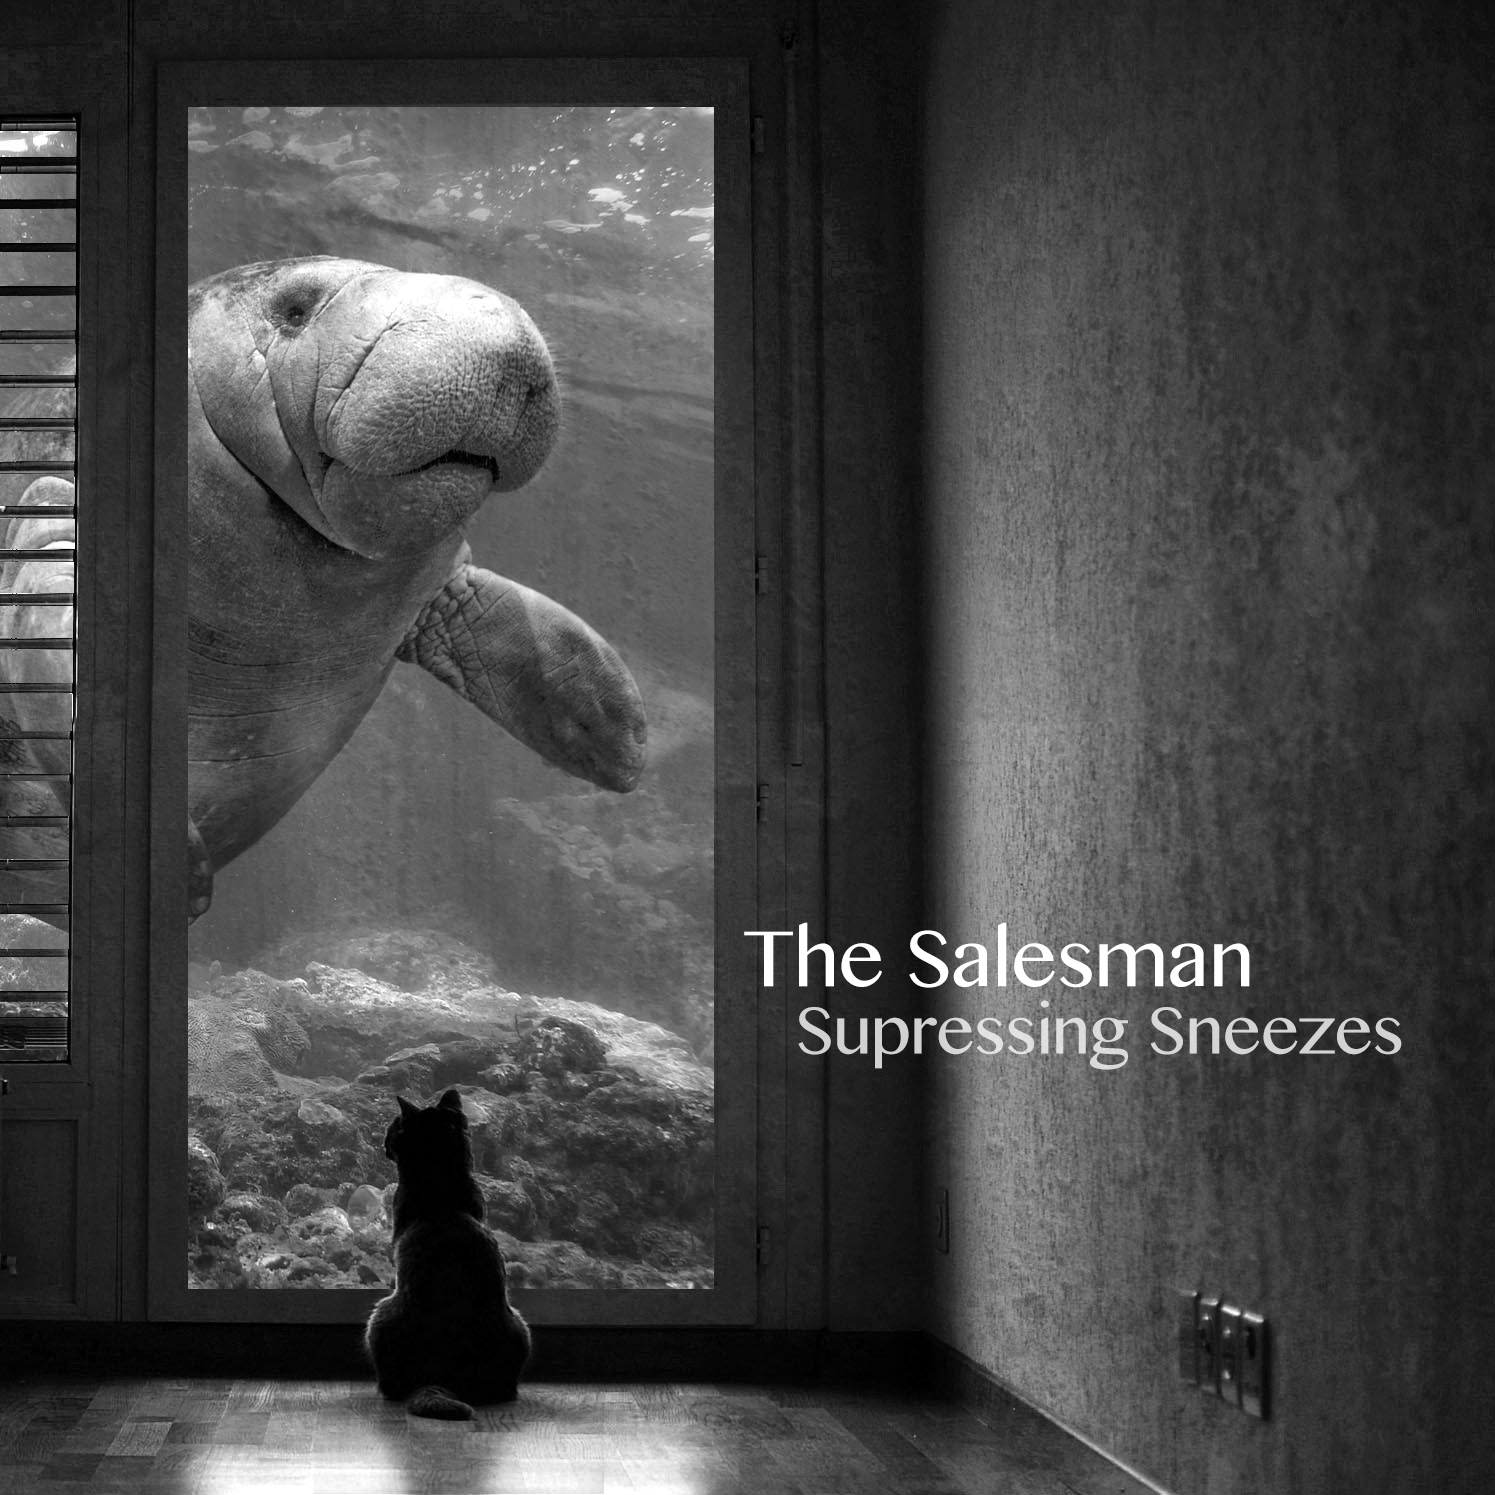 The Salesman, Album: Supressing Sneezes - 7 Original Ukulele Songs Due to Be Released 8-25-15